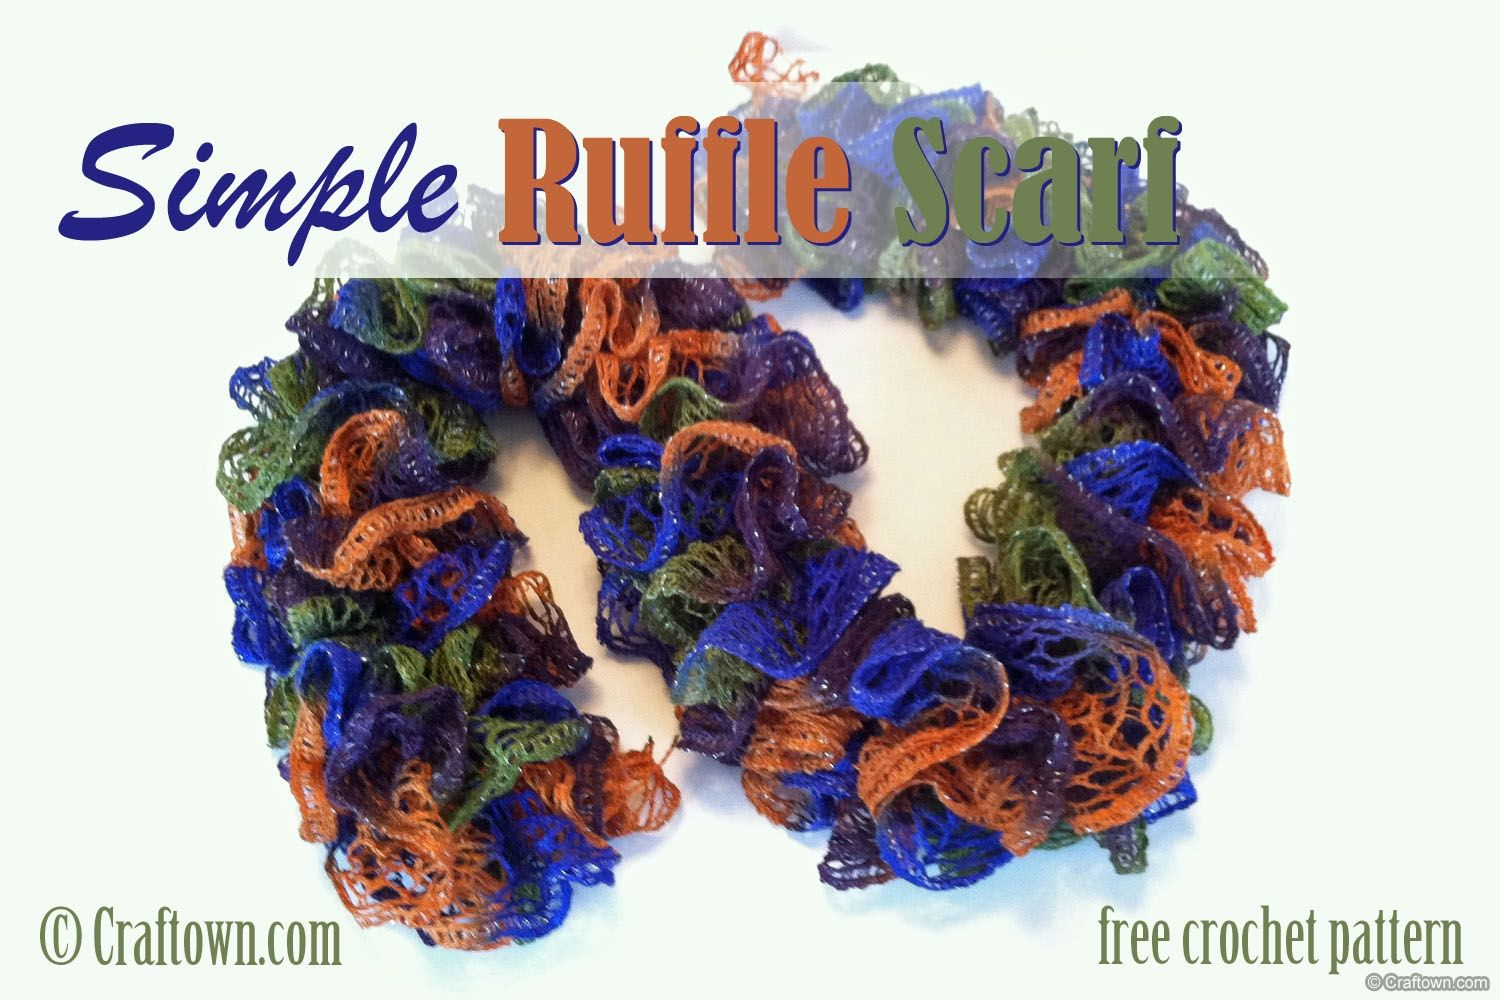 Free Crochet Pattern - Simple Ruffle Scarf (love this EASY pattern ...